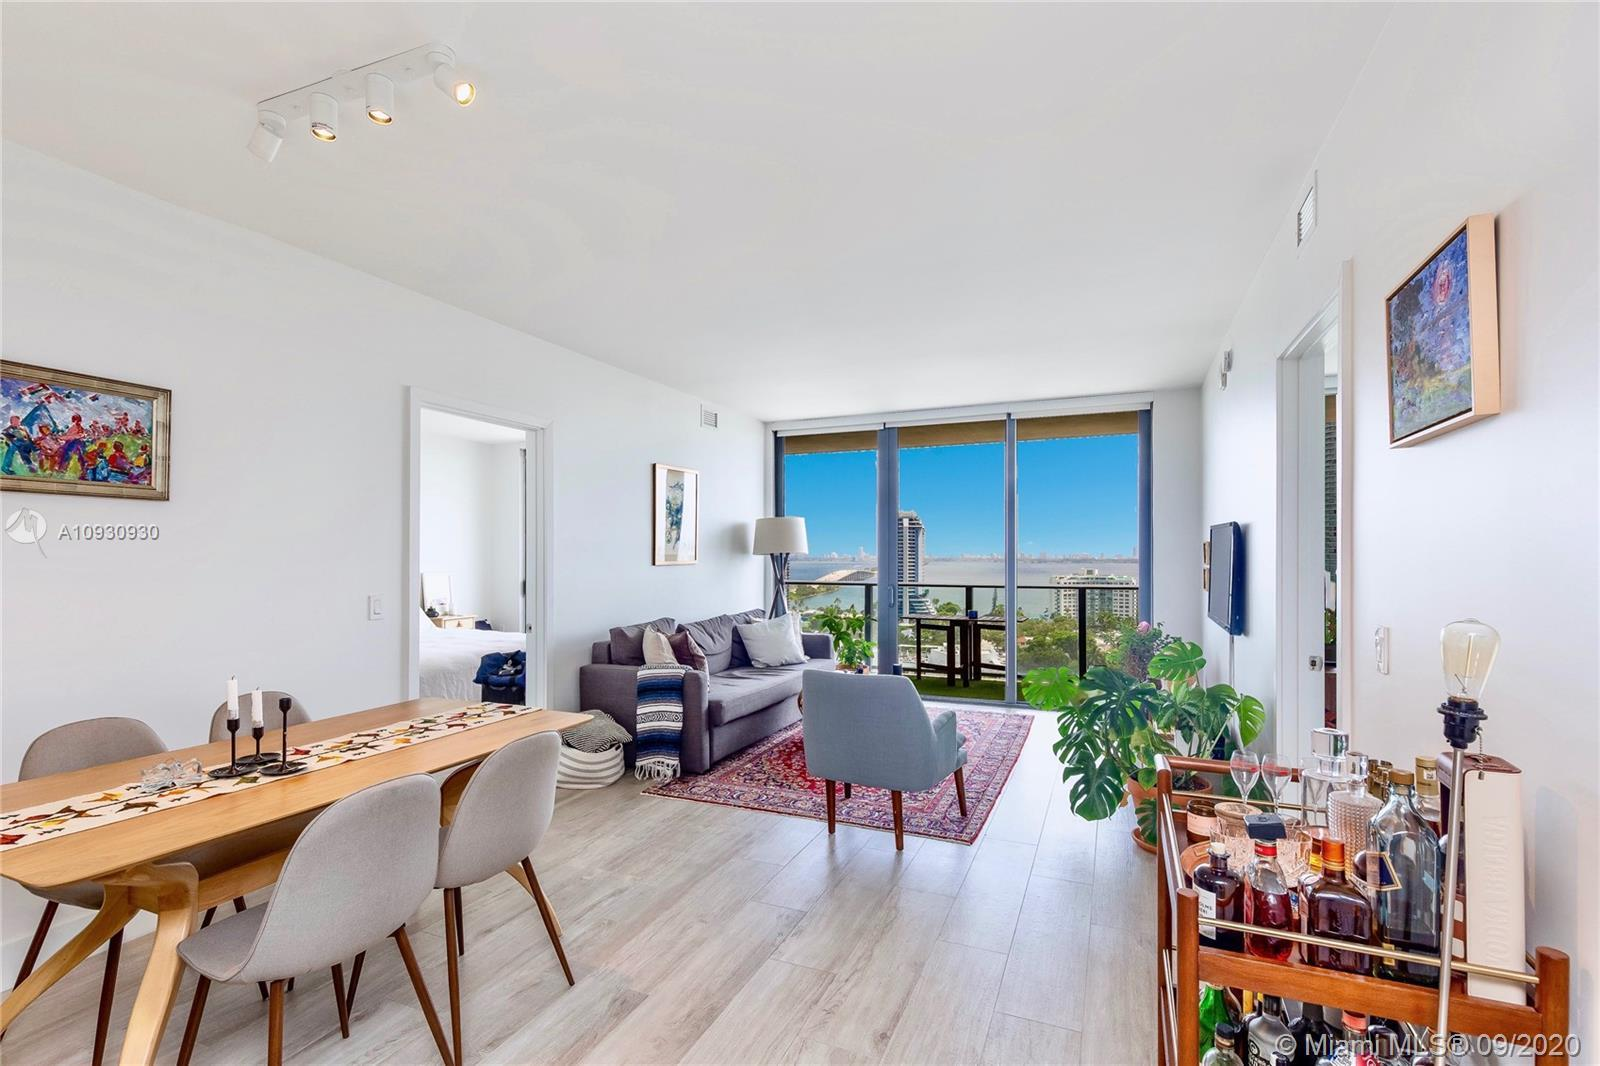 Stunning views of Biscayne Bay and Miami Beach. Located in the heart of Midtown, steps away from the